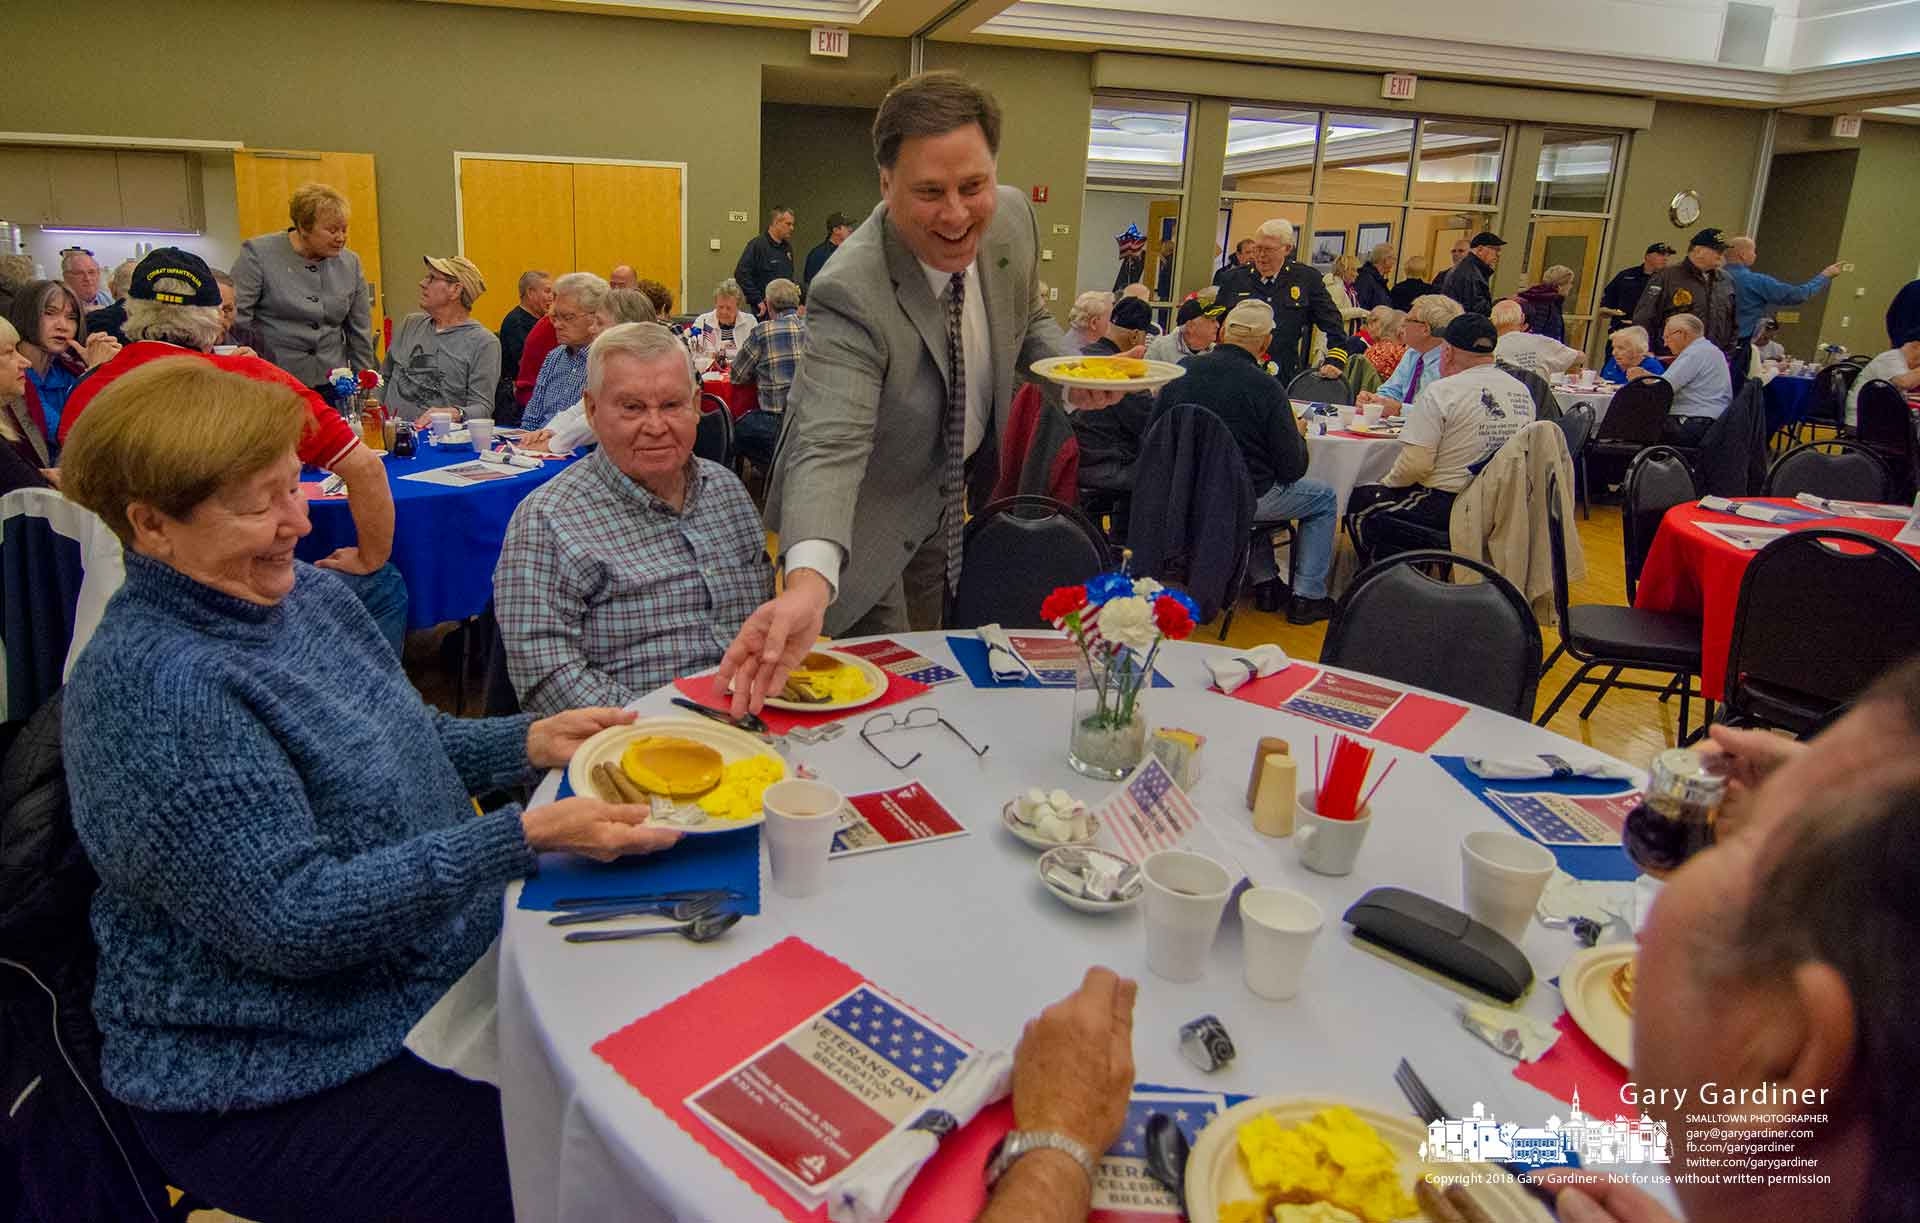 Westerville City Manager Dave Collinsworth serves breakfast at the annual Veterans Day Celebration pancake breakfast at the Community Center. My Final Photo for Nov. 9, 2018.